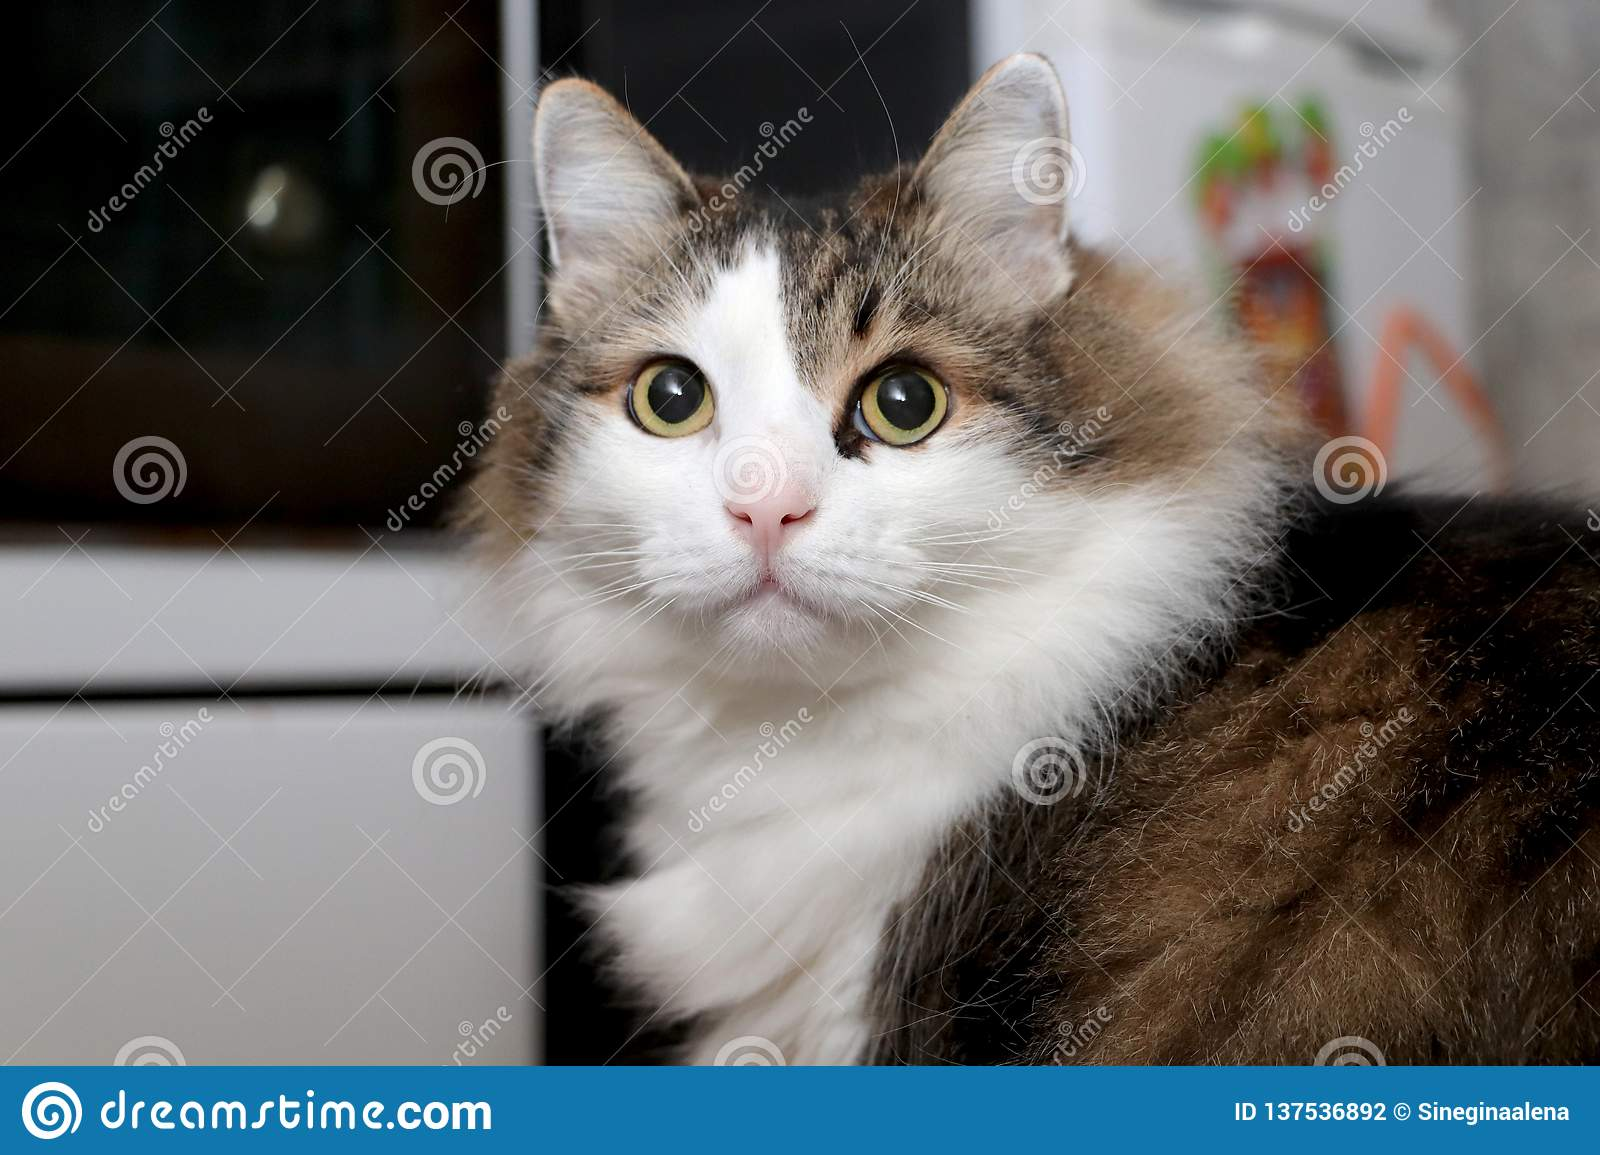 Breed Norwegian Forest Cat Stock Photo Image Of Home 137536892